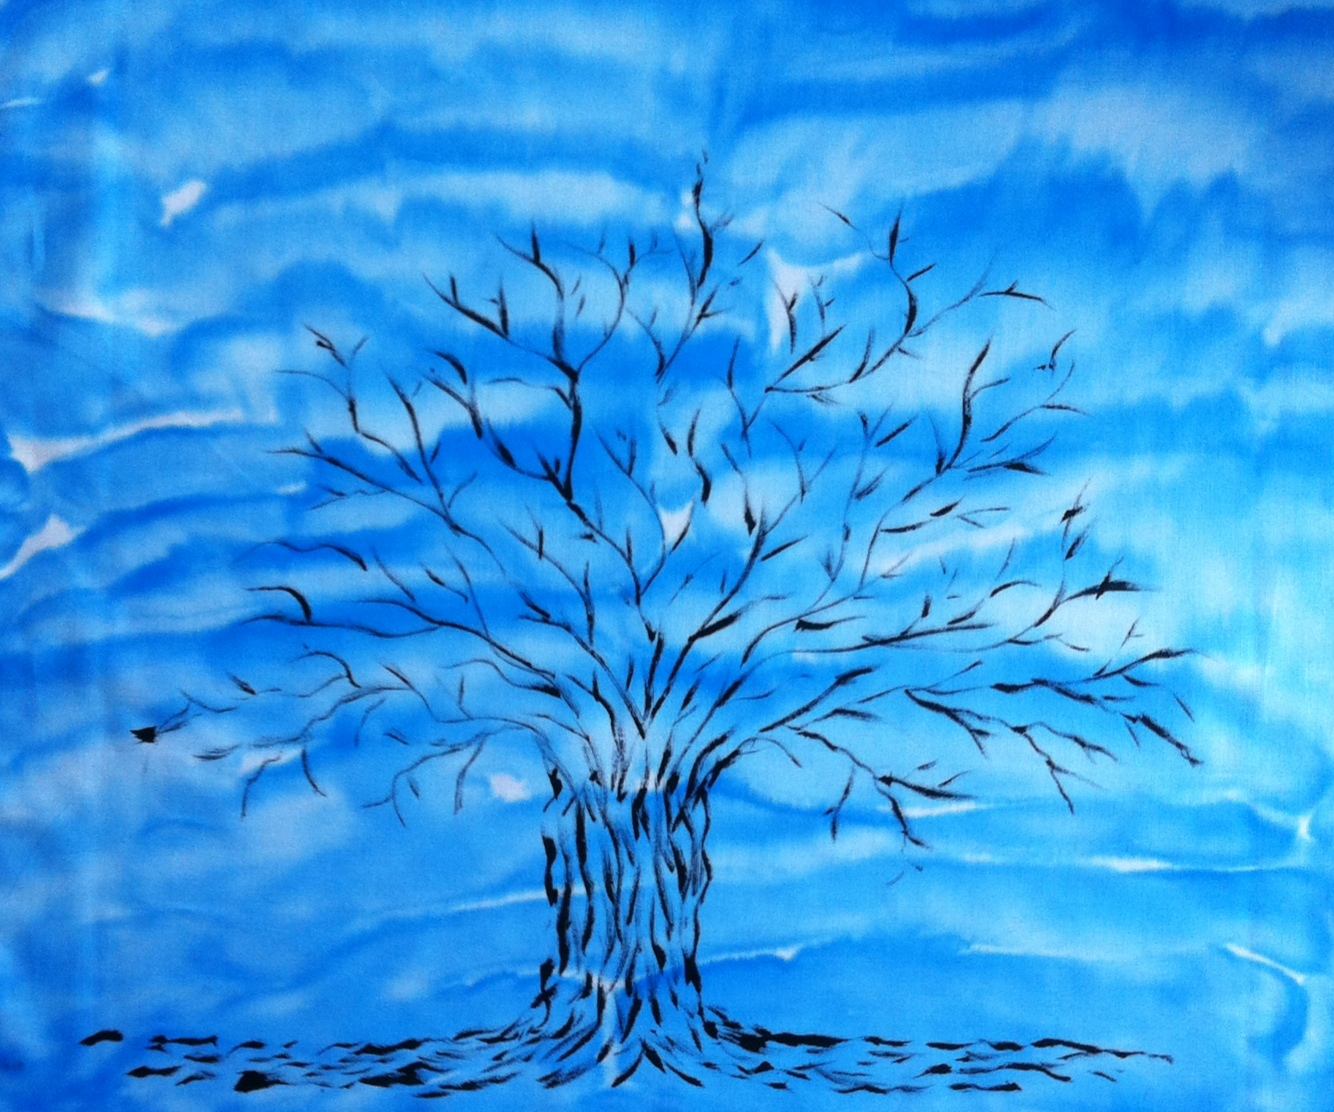 blue sky tree of life quilt fabric all hand painted